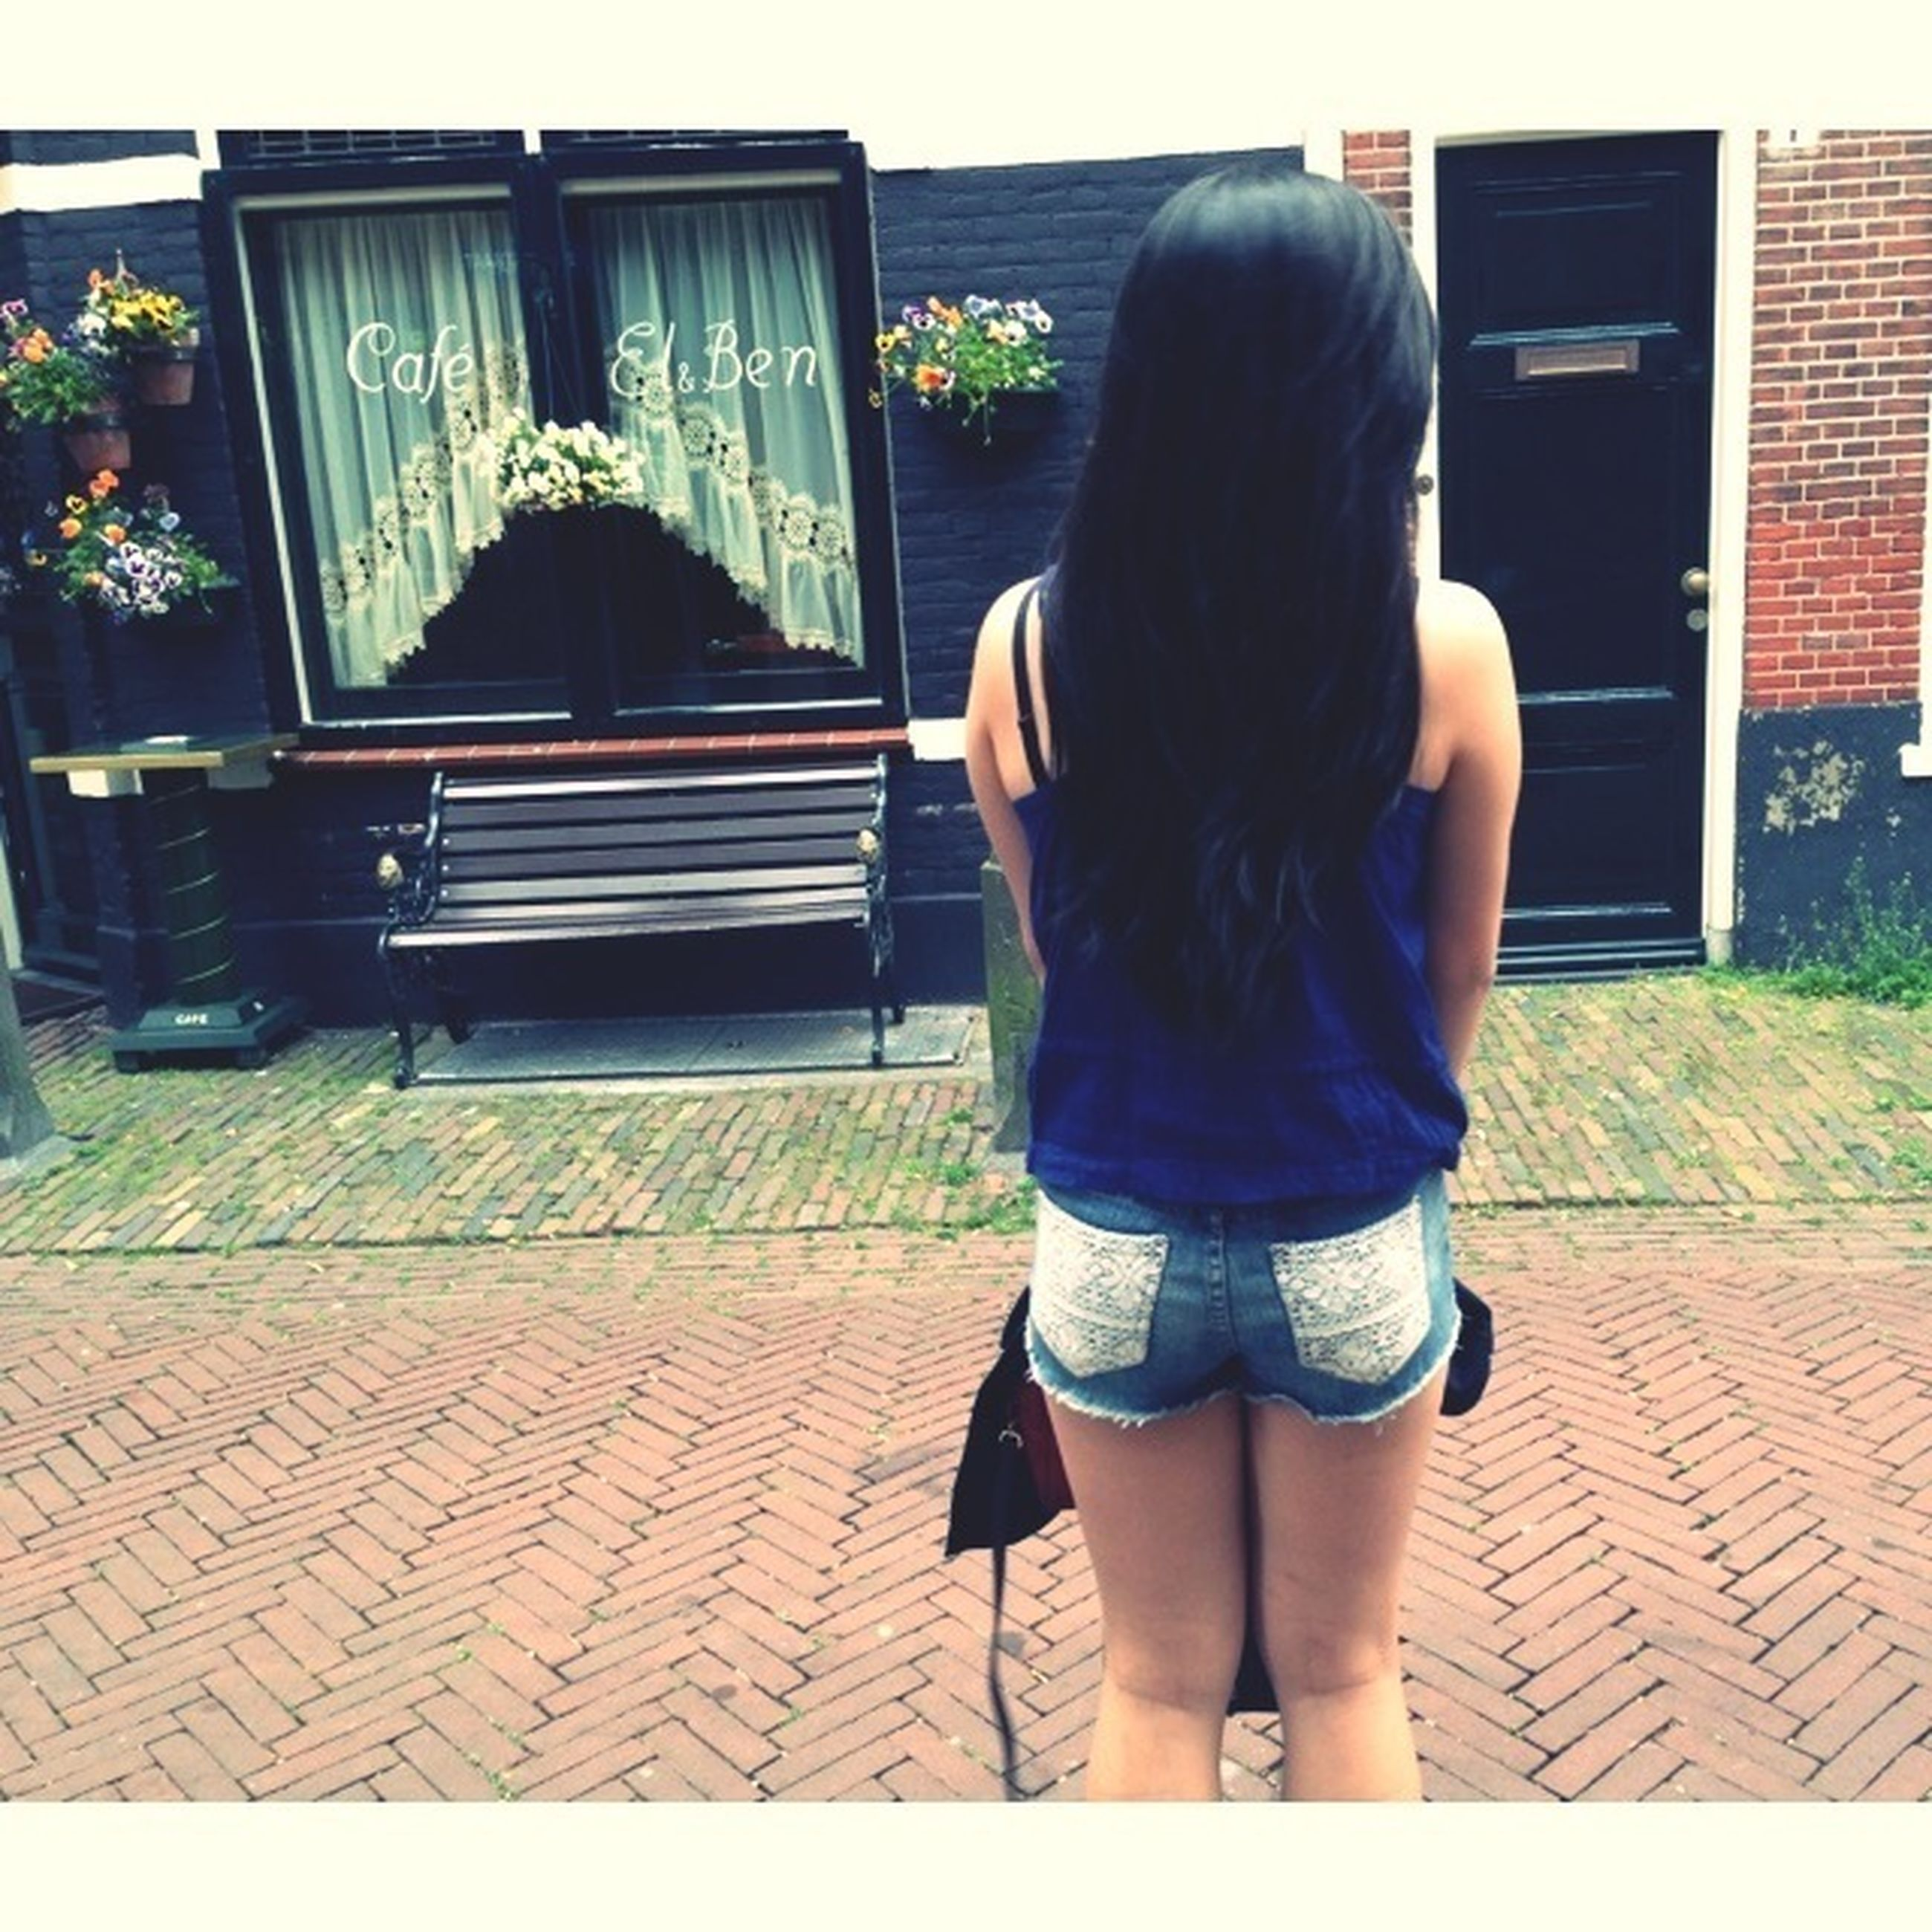 rear view, casual clothing, lifestyles, standing, full length, leisure activity, building exterior, built structure, architecture, sunlight, person, day, outdoors, three quarter length, childhood, sidewalk, side view, walking